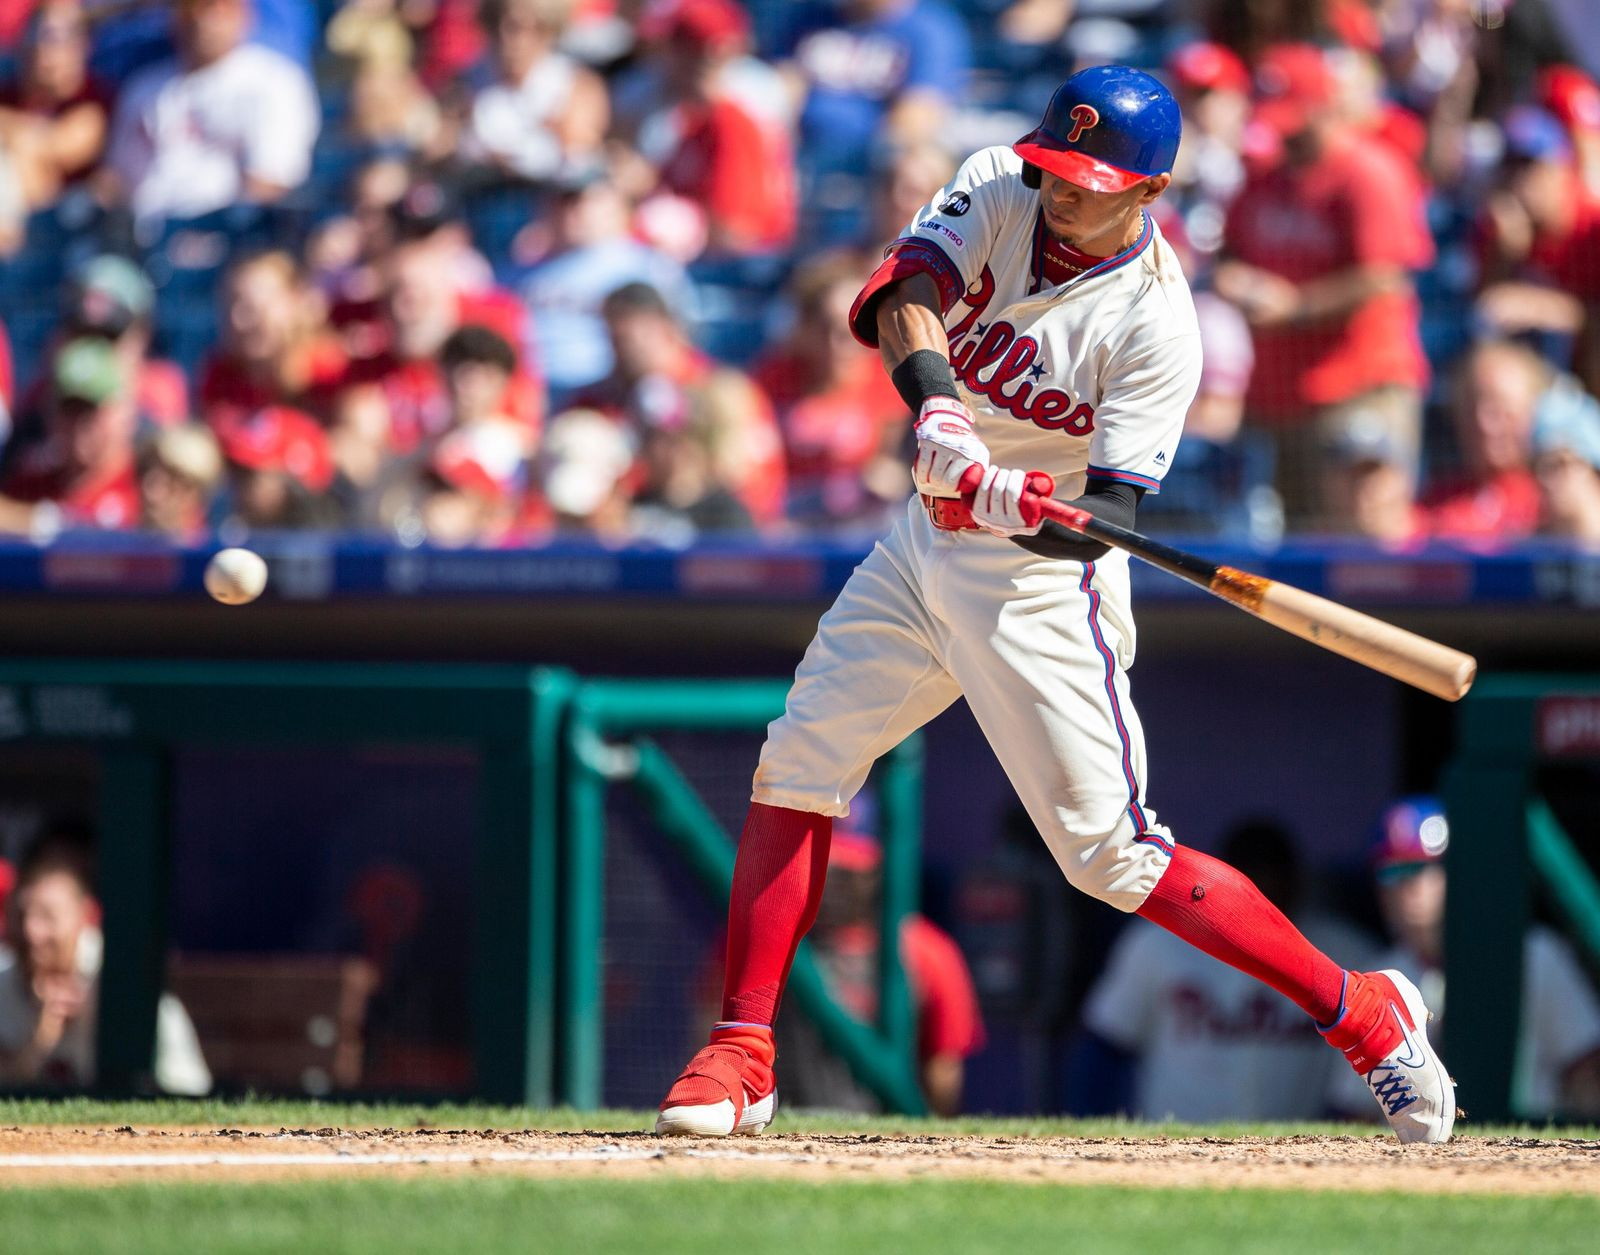 Philadelphia Phillies's Cesar Hernandez swings on a single during the sixth inning of a baseball game against the Boston Red Sox, Sunday, Sept. 15, 2019, in Philadelphia. (AP Photo/Laurence Kesterson)